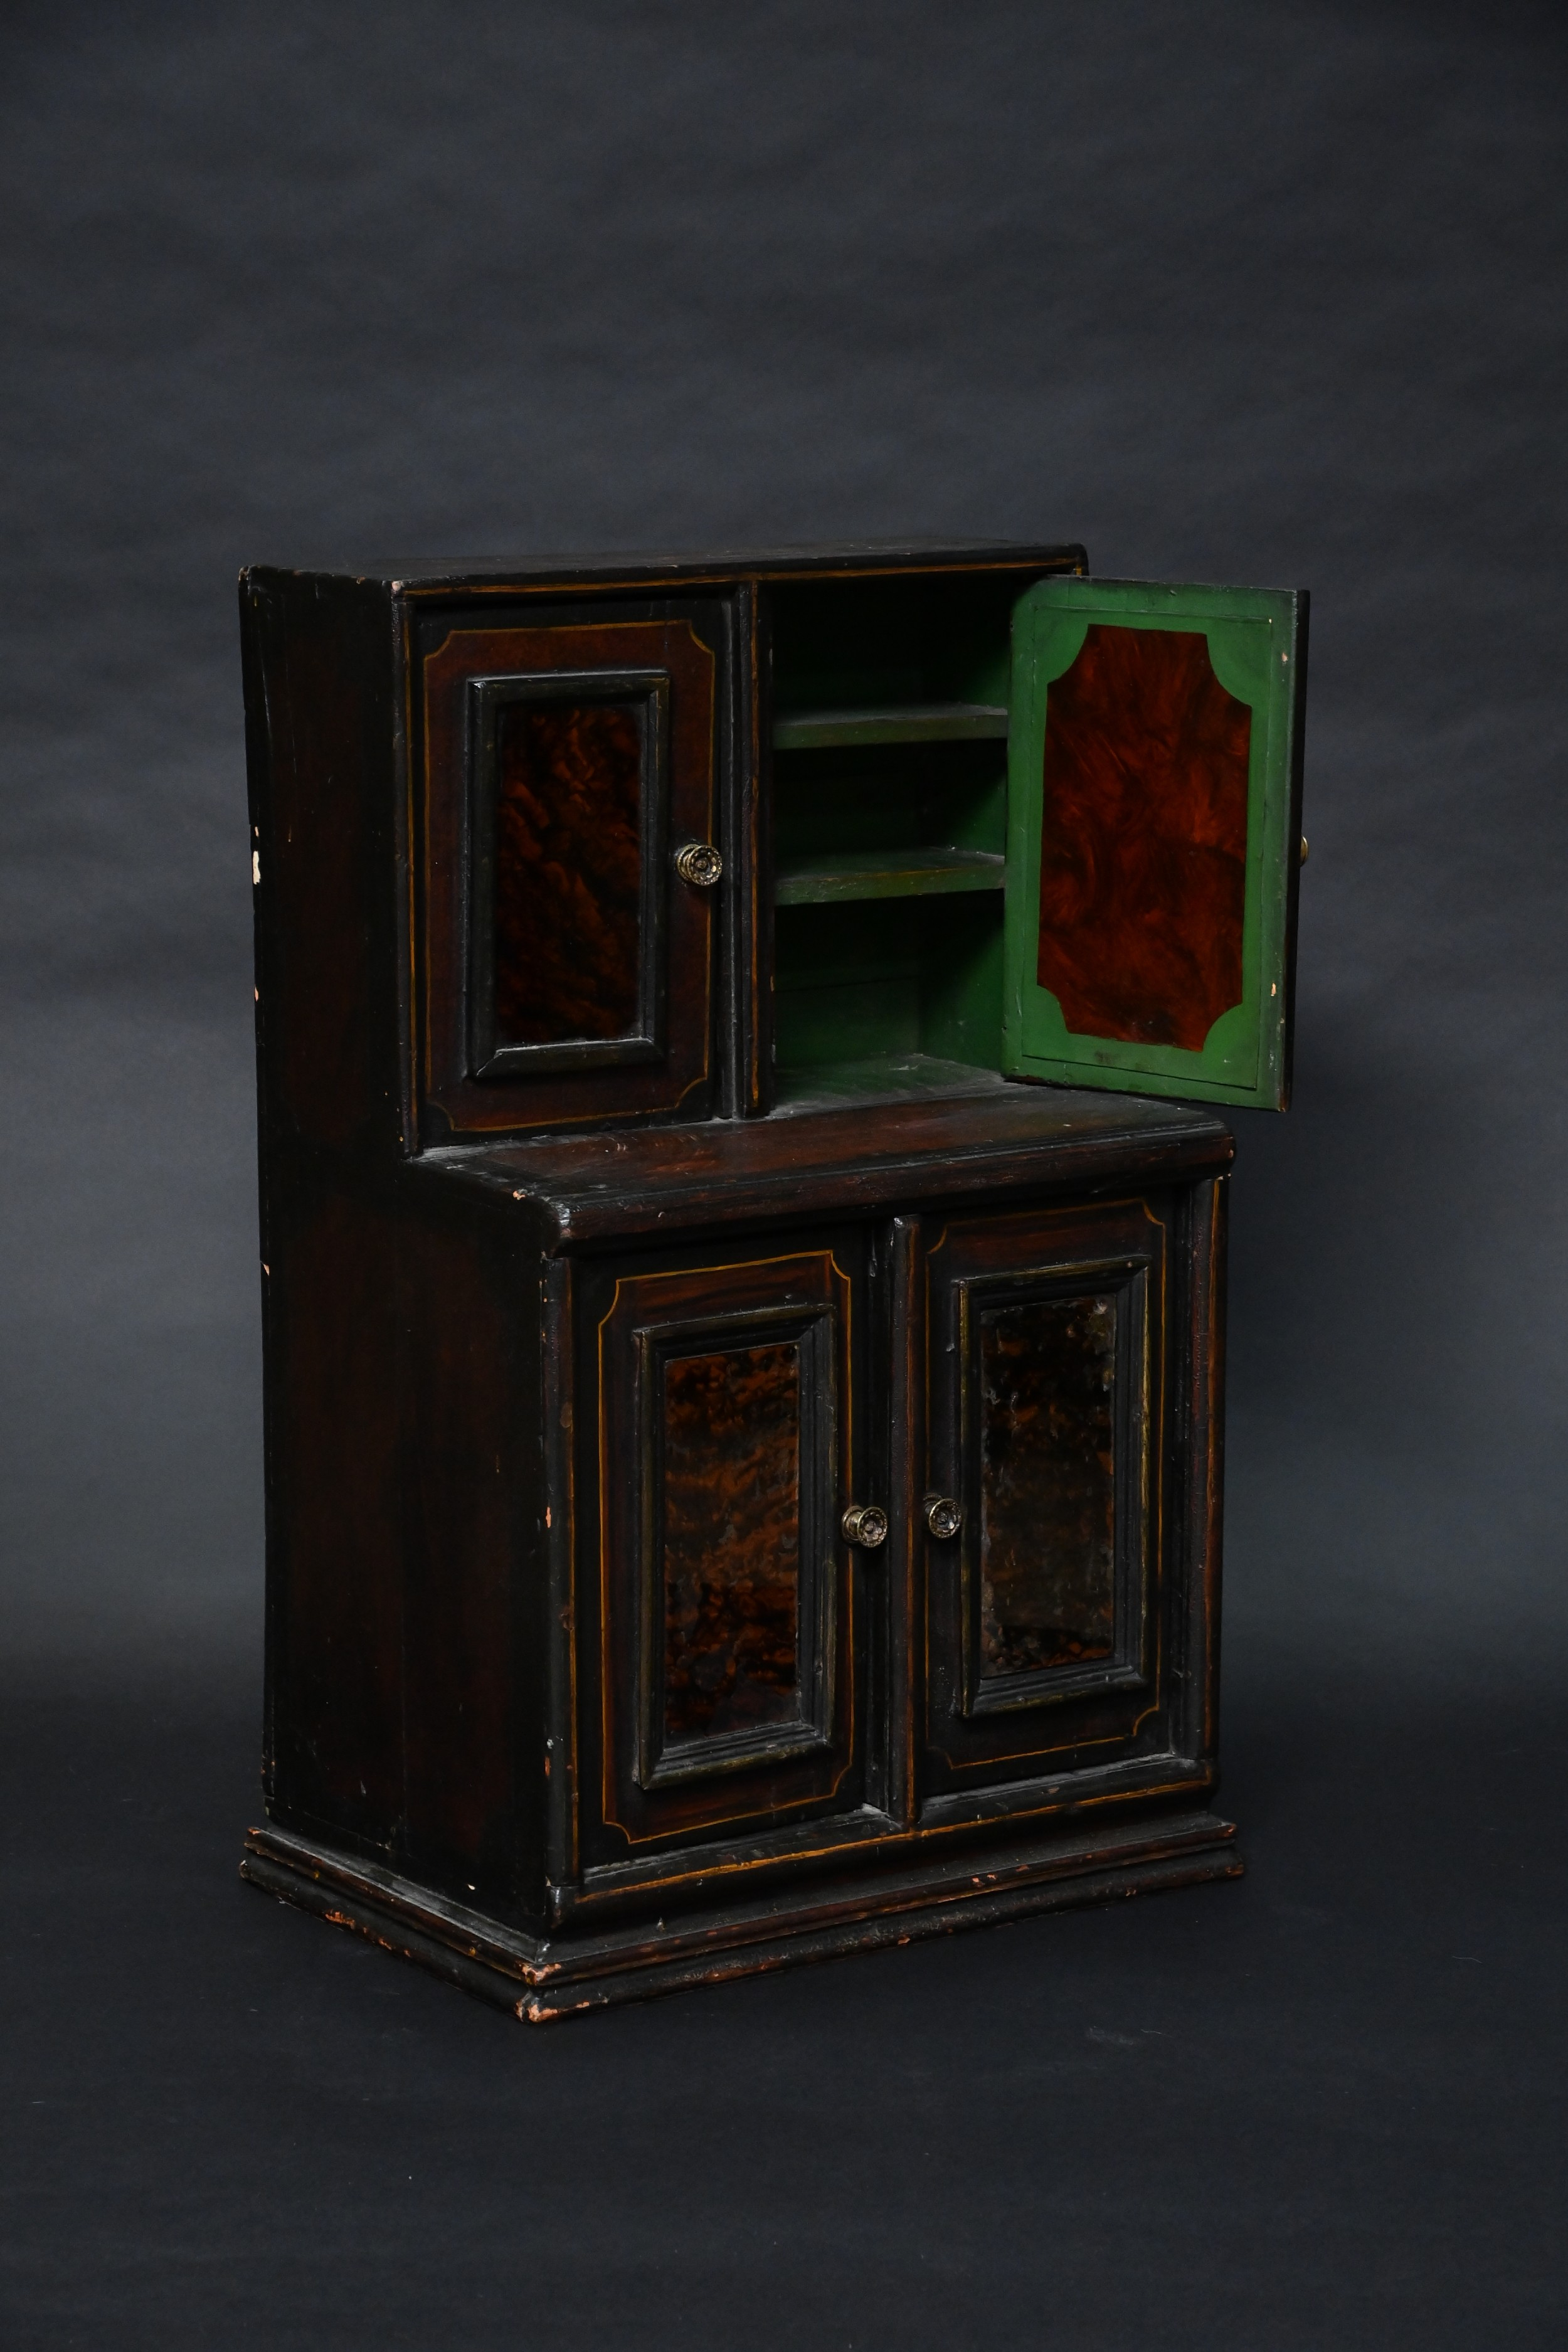 apothecary cabinet or smokers cabinet of stunning paint effects and tortoise shell glass beautiful green interior and panel art